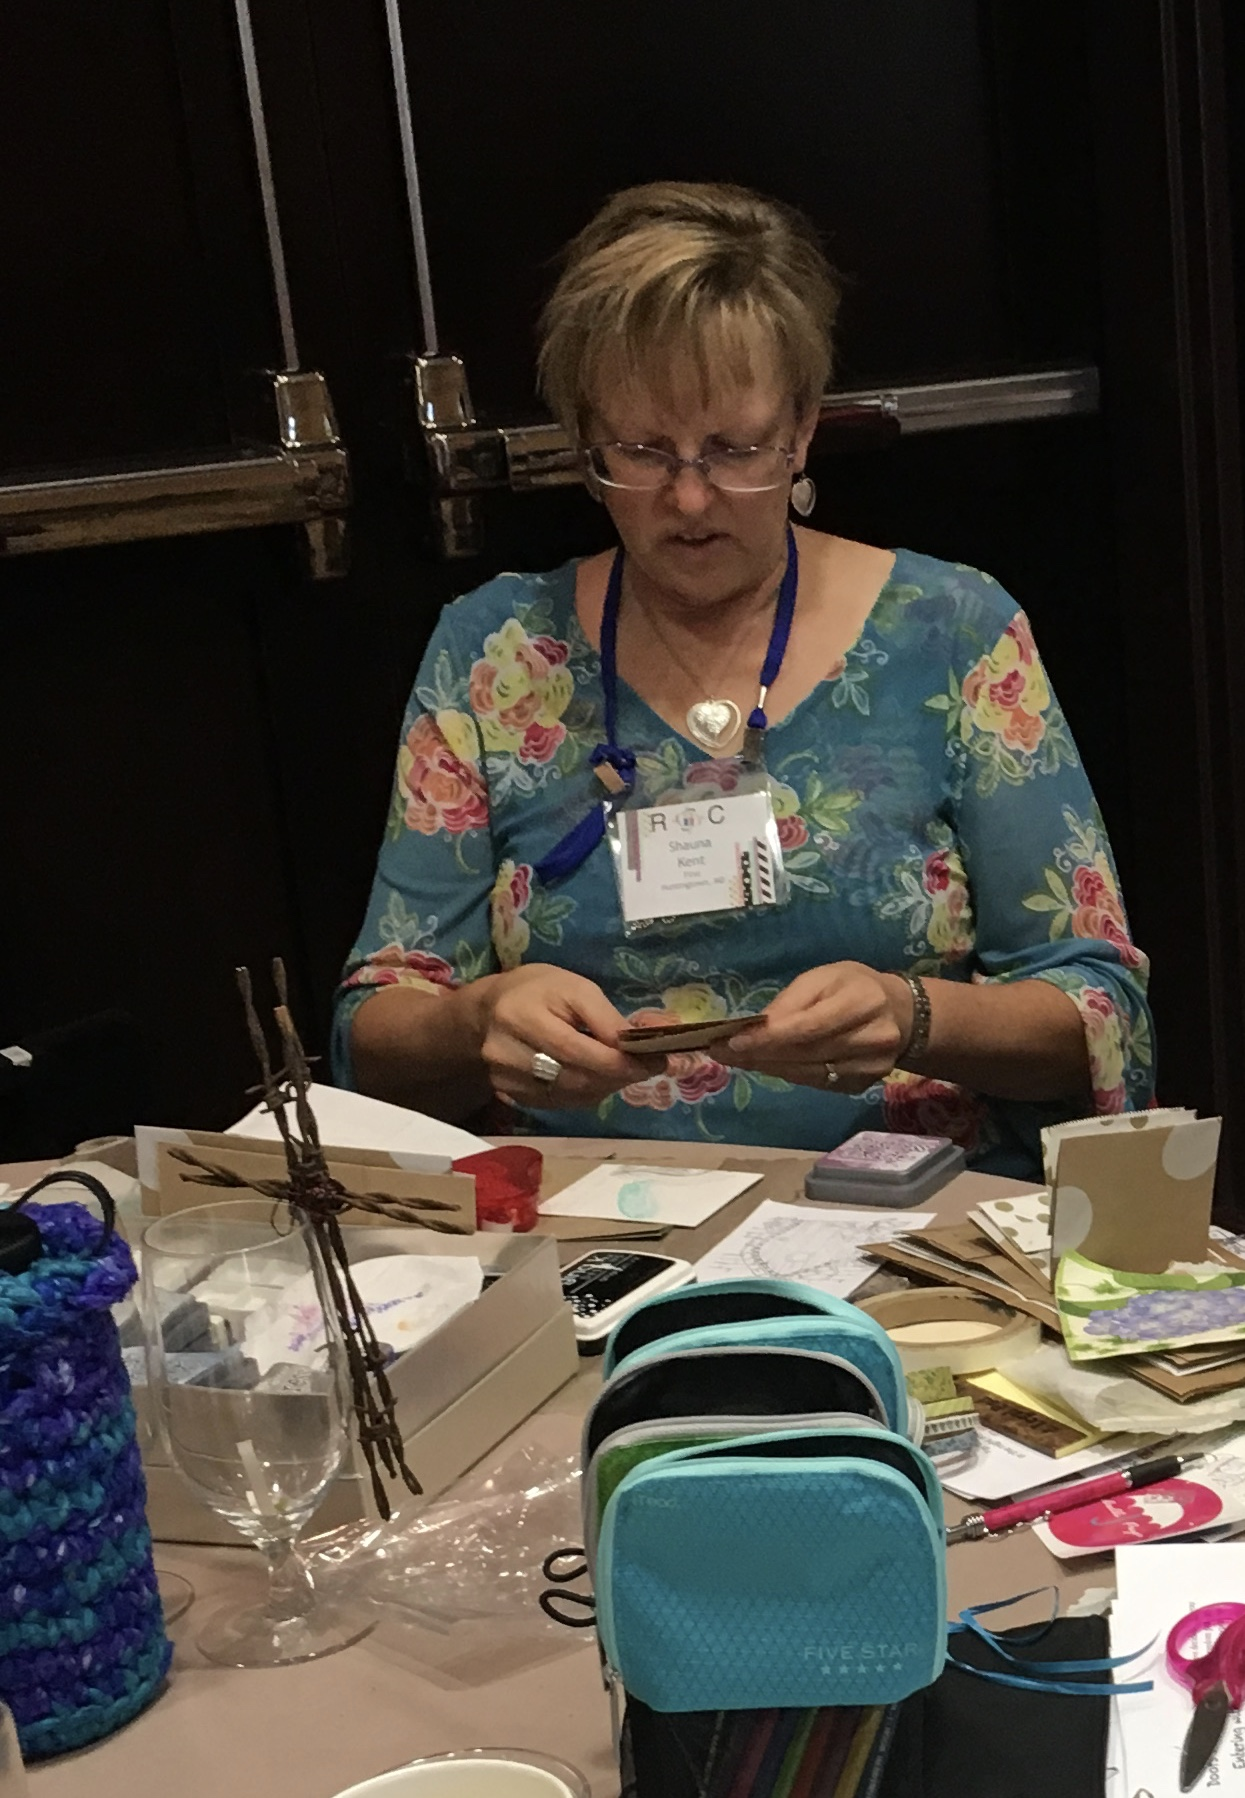 Shauna and her husband Rev. Jim Kent  serve at First Lutheran Church in Huntington, Maryland.  Shauna is an experienced cardmaker and crafter.  She is a wonderful encourager of Visual Faith practices.